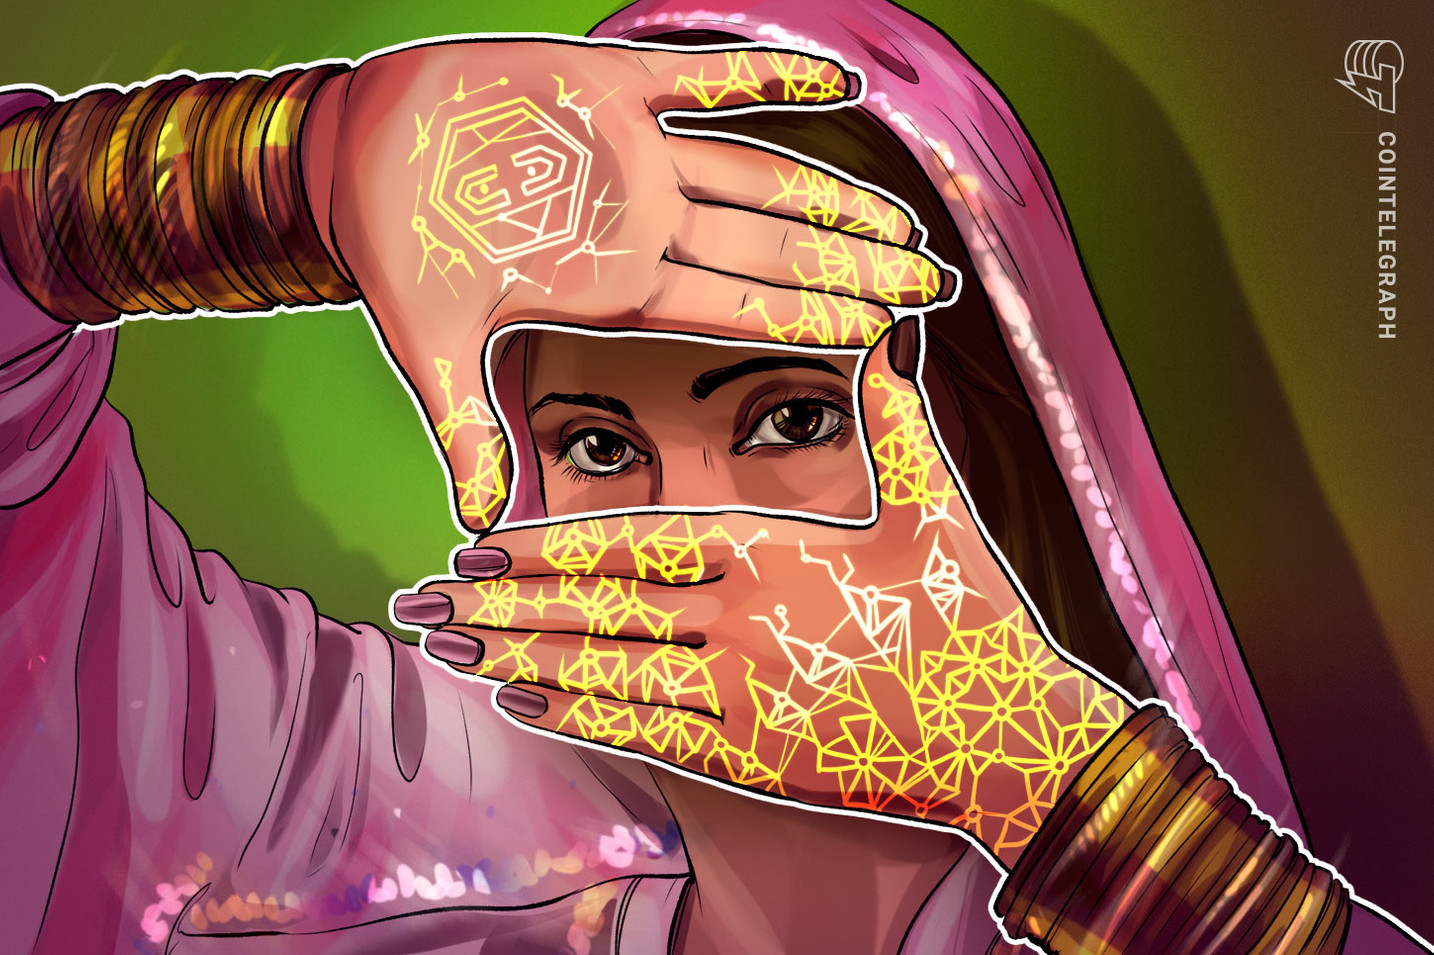 Binance se une a la Asociación India de Internet en medio de la incertidumbre regulatoria en el país